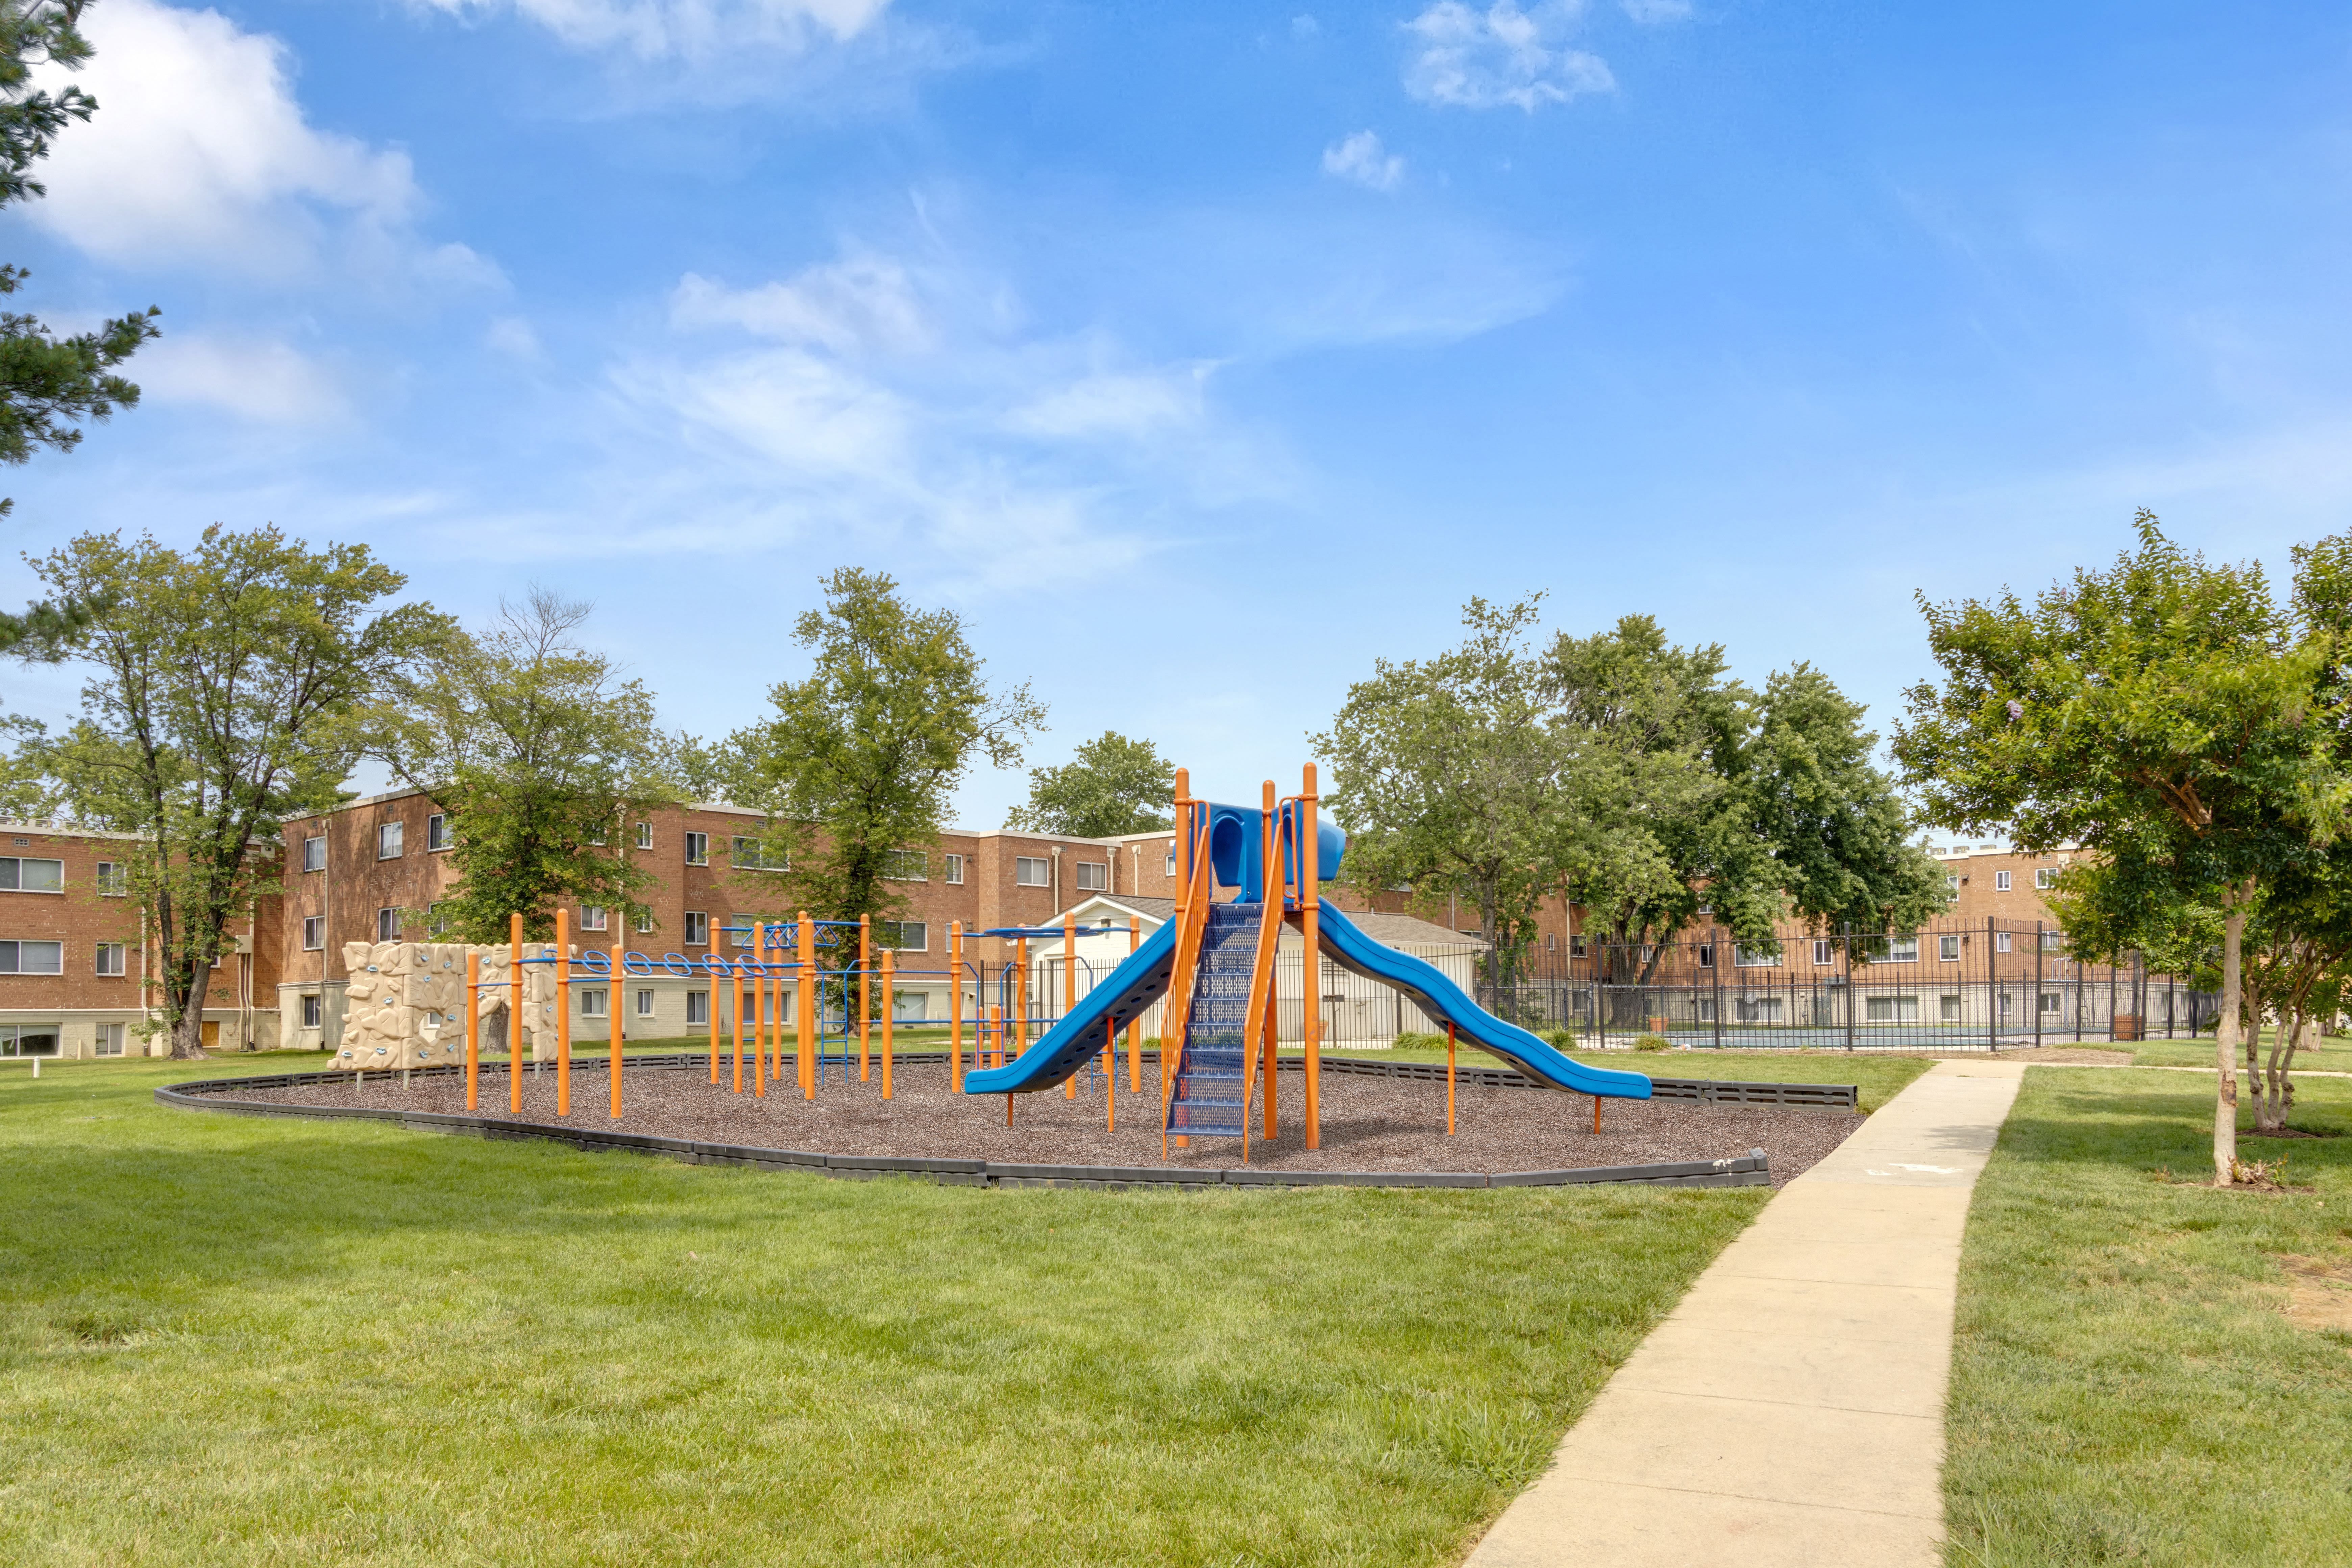 Playground and pathway at Regency Pointe in Forestville, Maryland